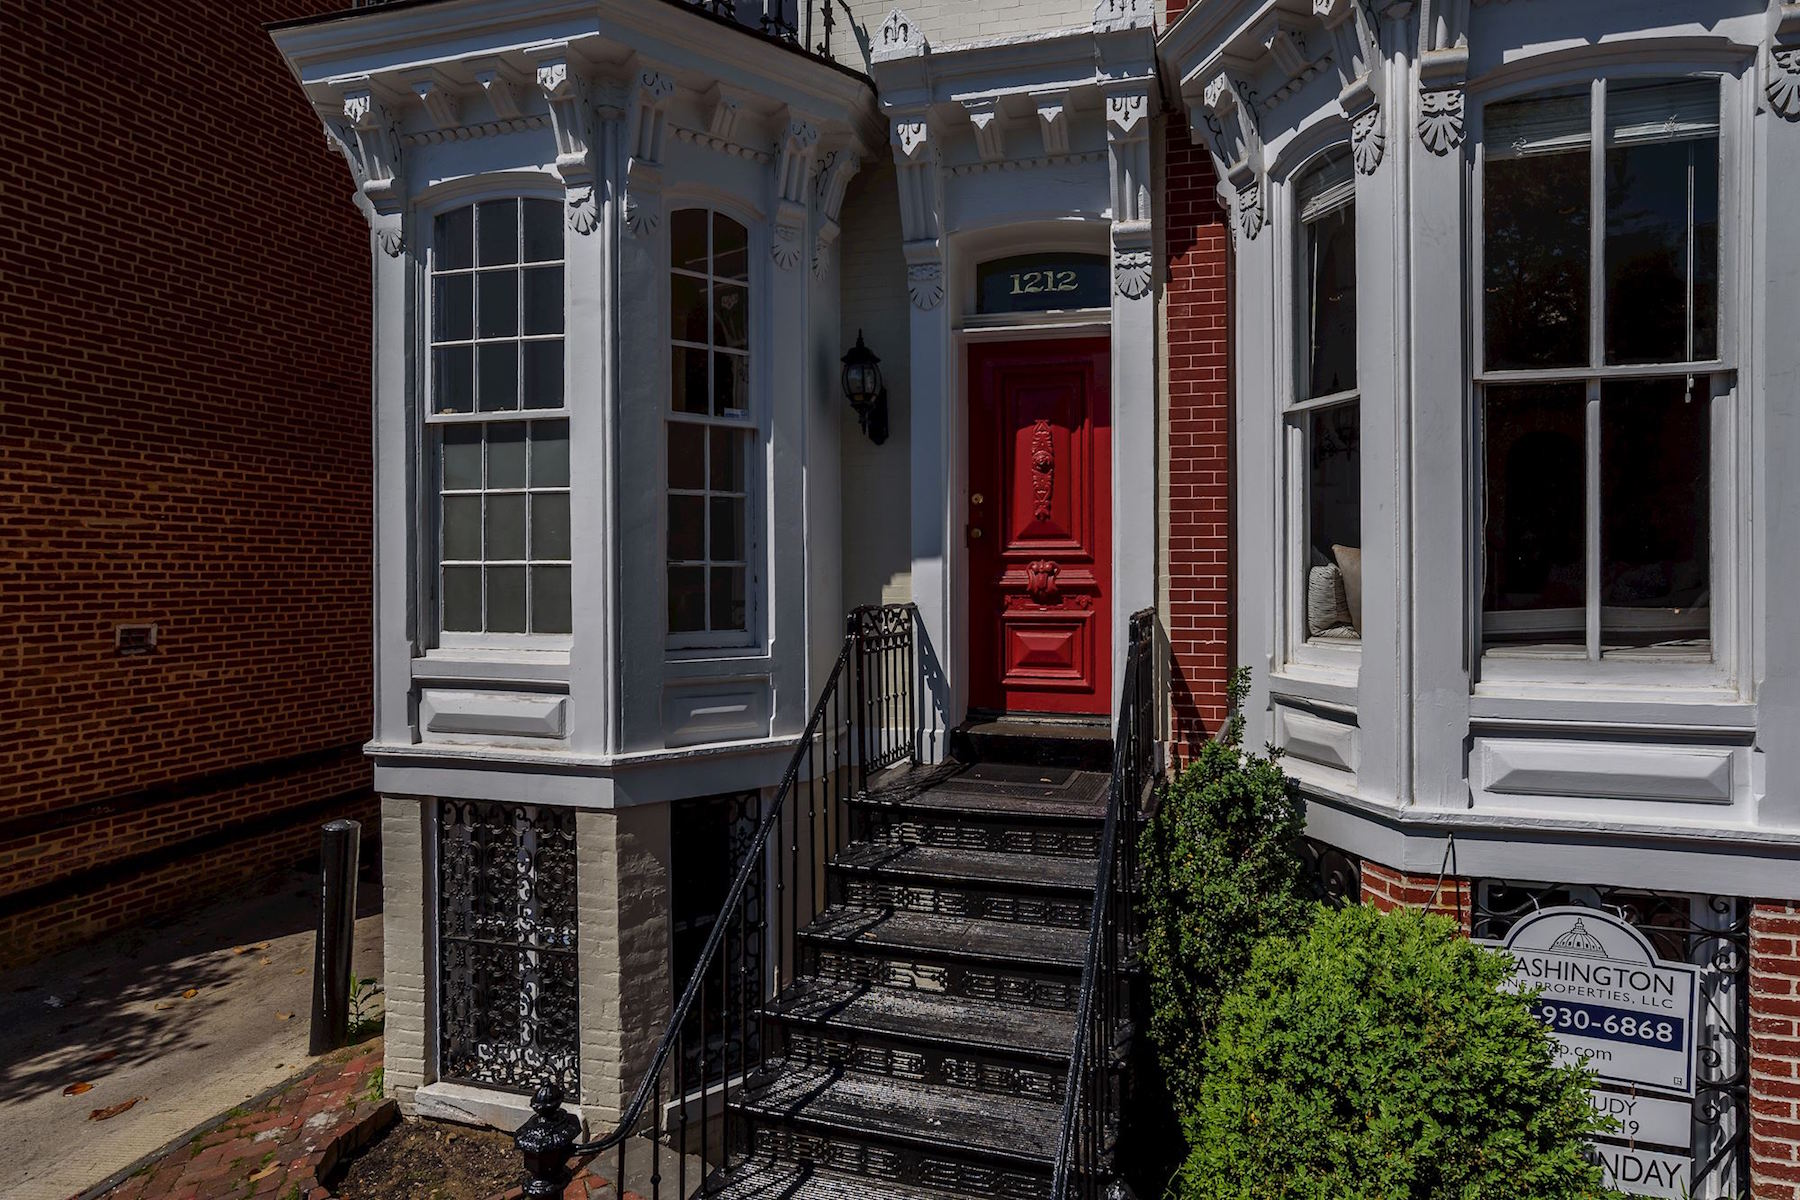 Casa unifamiliar adosada (Townhouse) por un Alquiler en 1212 30th Street 1212 30th Street Nw Washington, Distrito De Columbia 20007 Estados Unidos